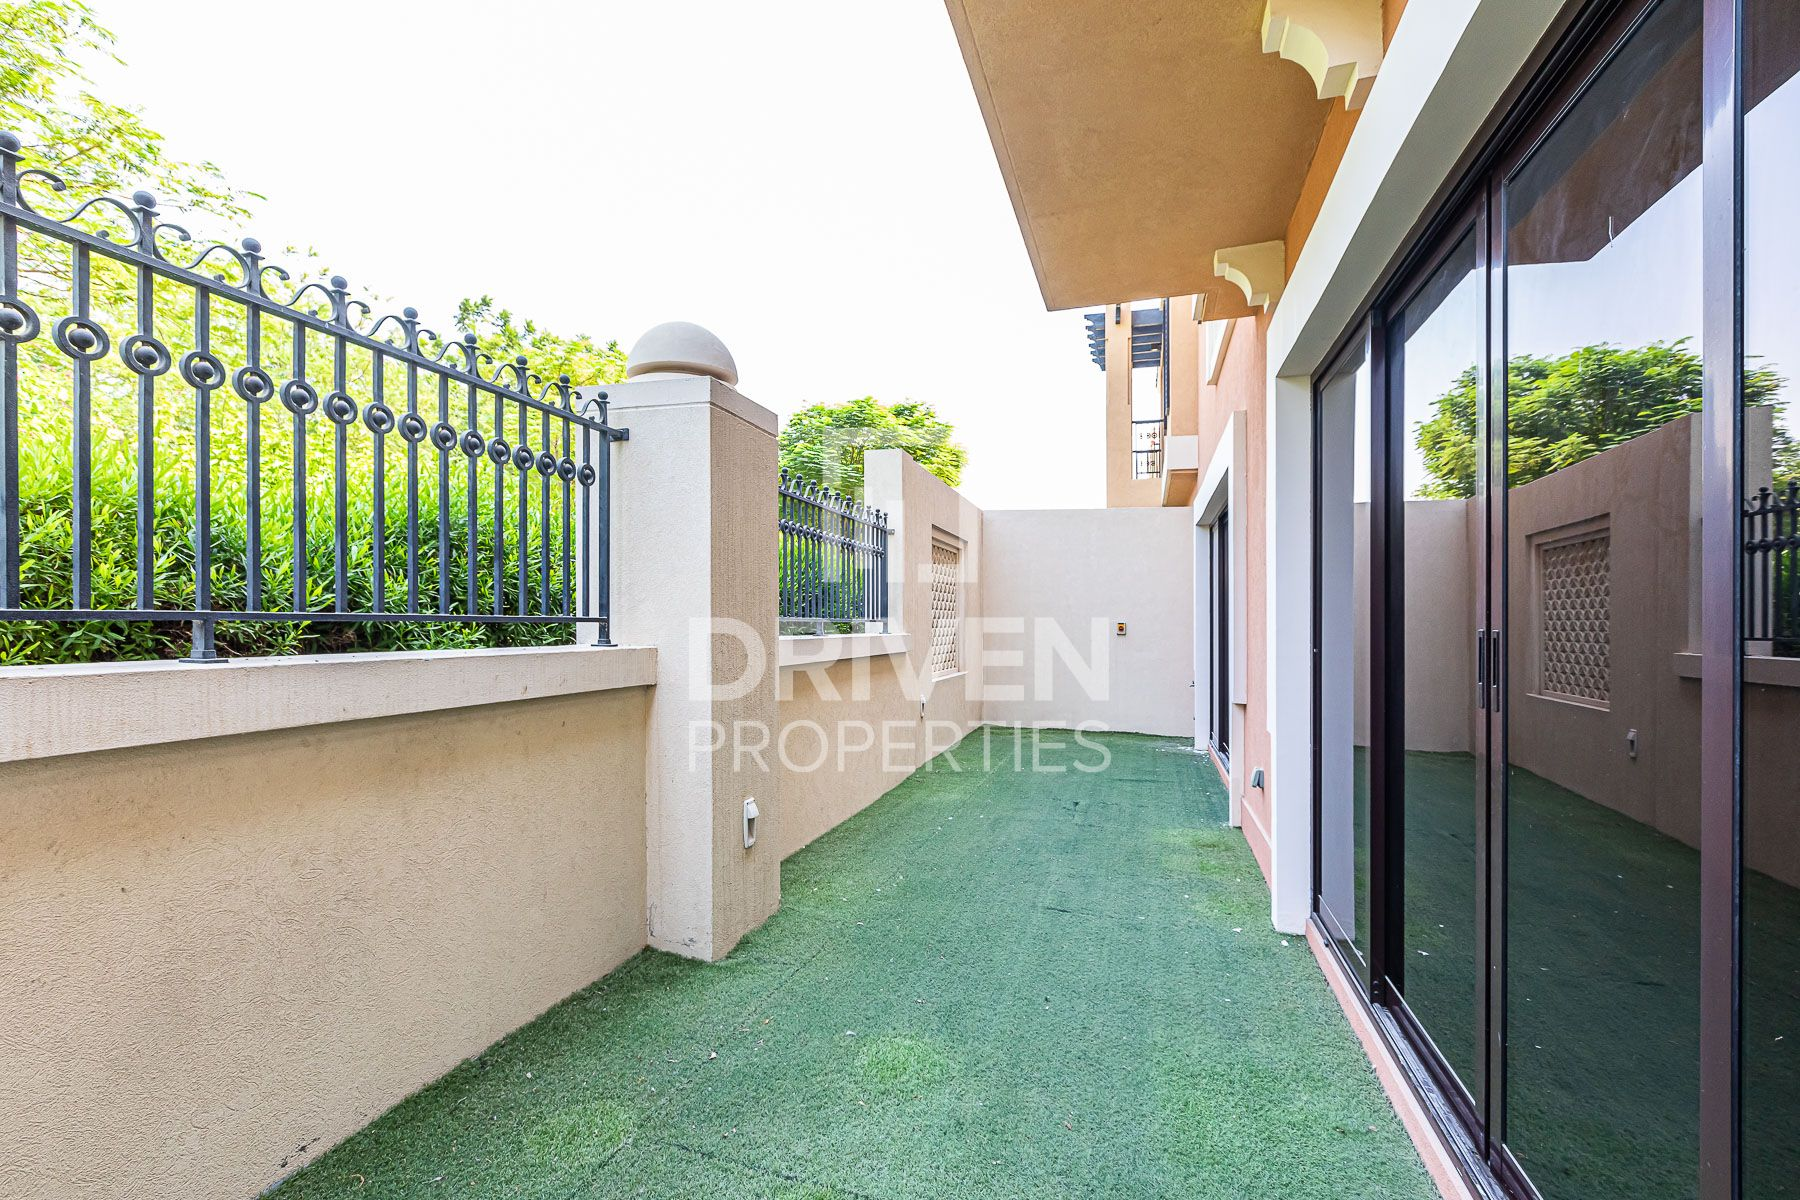 4 Bedroom Townhouse with Equipped Kitchen